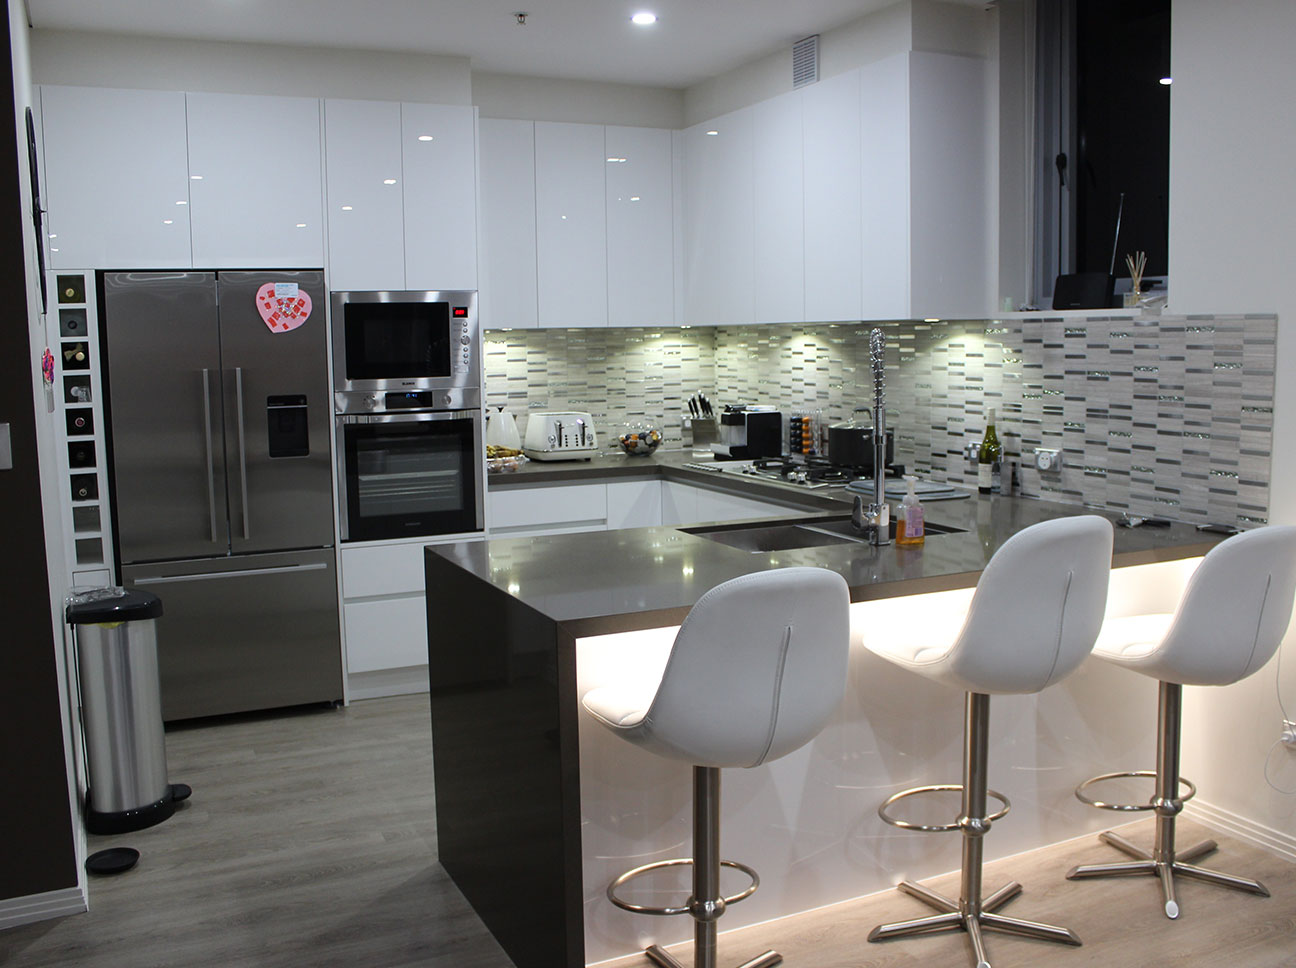 Kitchen Renovations - Gold Coast - Kitchen Brokers Queensland - Iain & Kelly - Southport